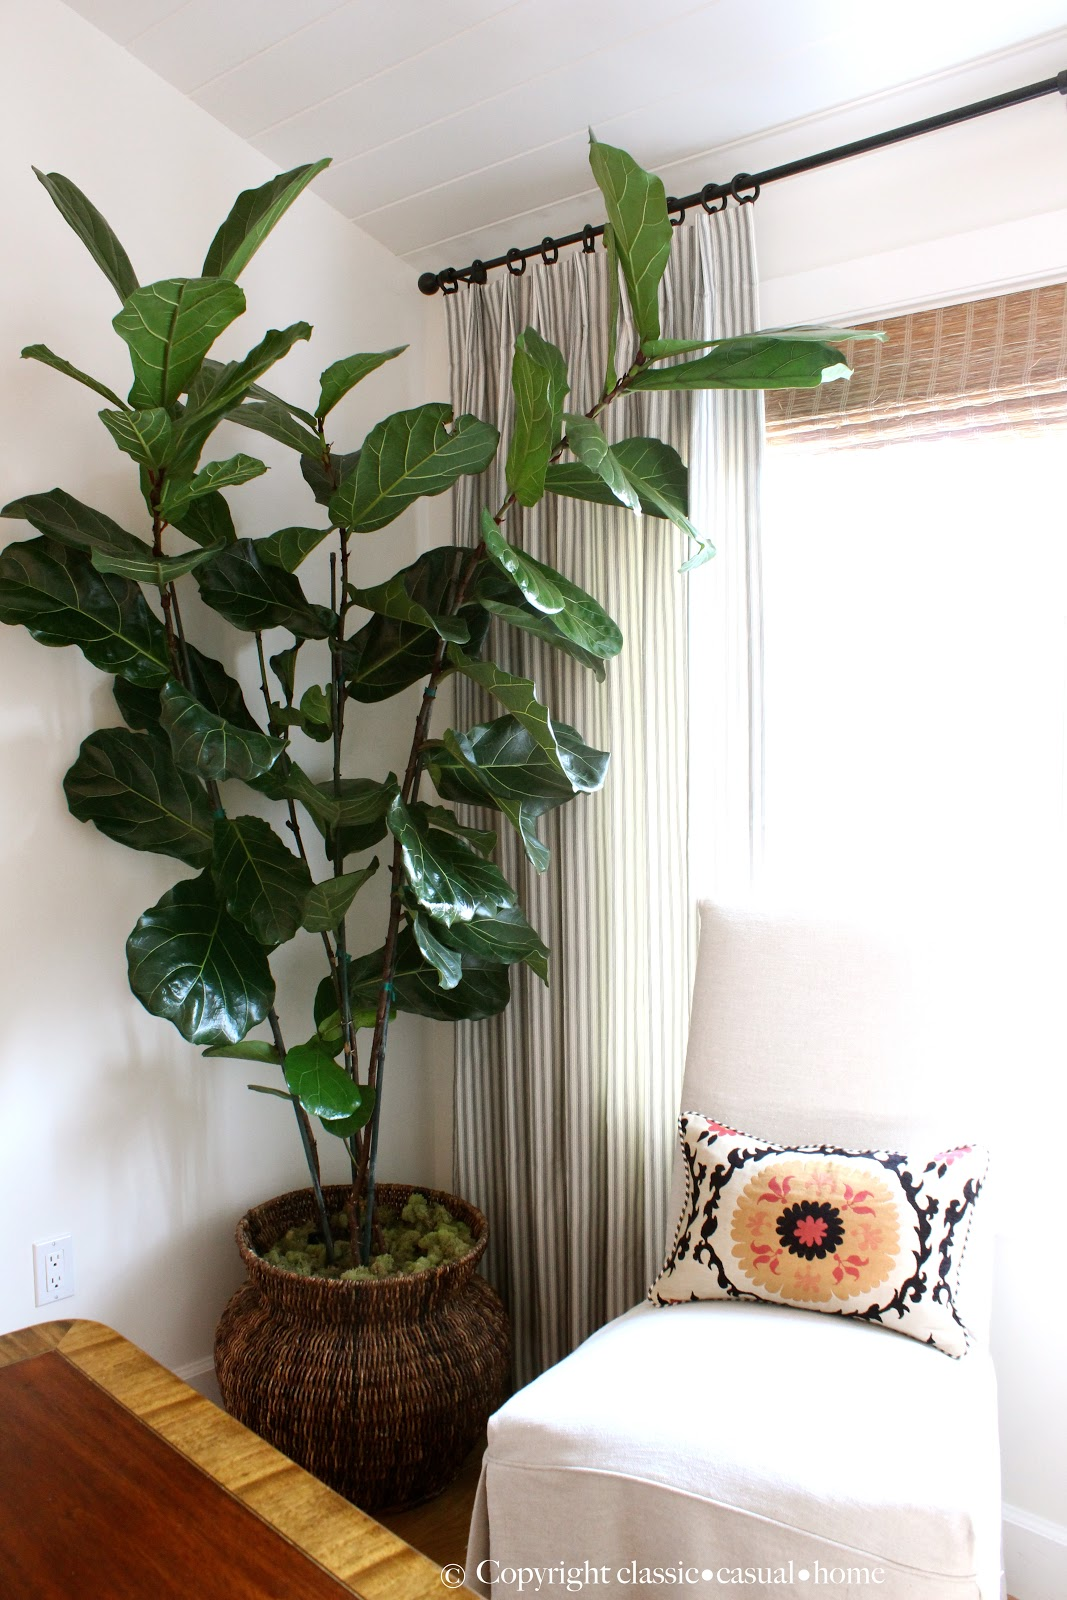 Six easy care indoor plant ideas classic casual home for Easy care indoor plants